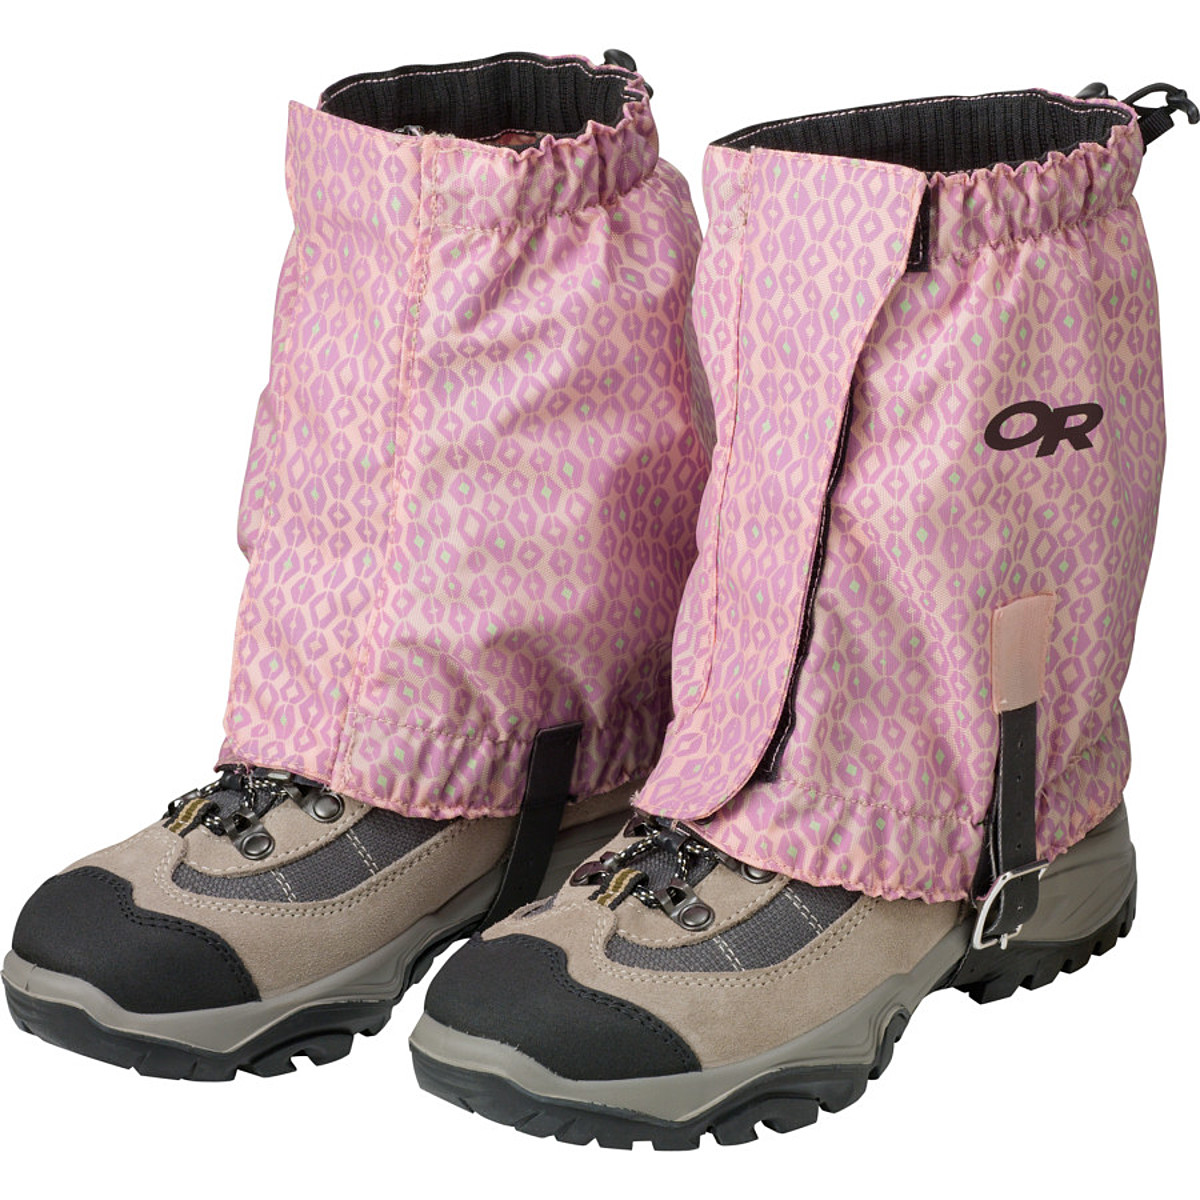 Outdoor Research Trailhead Gaiters